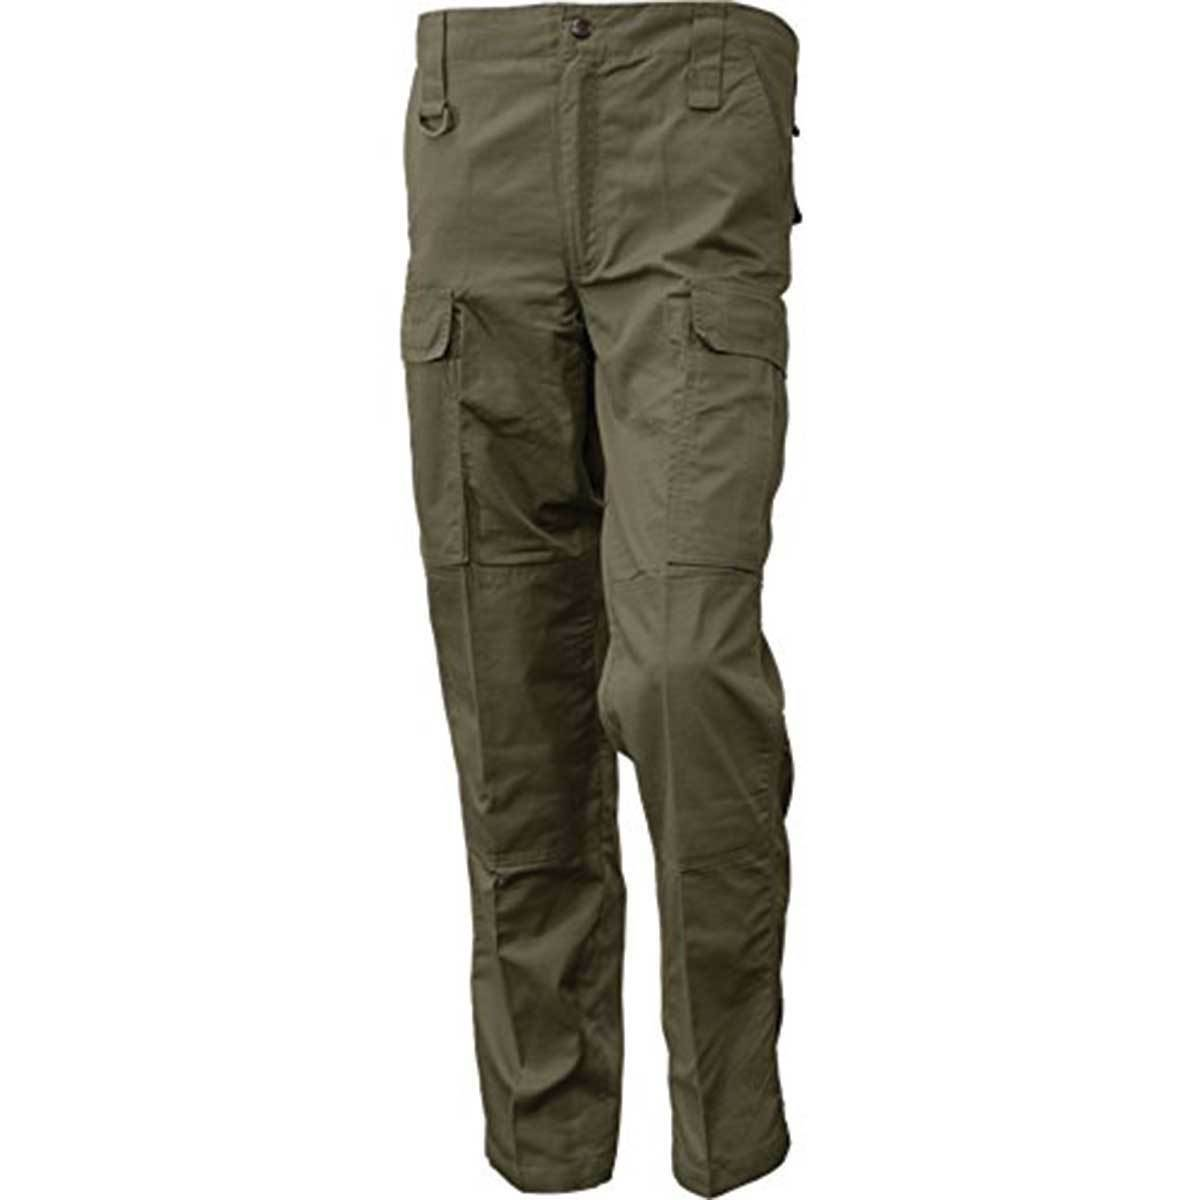 Tippmann Tactical TDU Pants - Olive - Medium